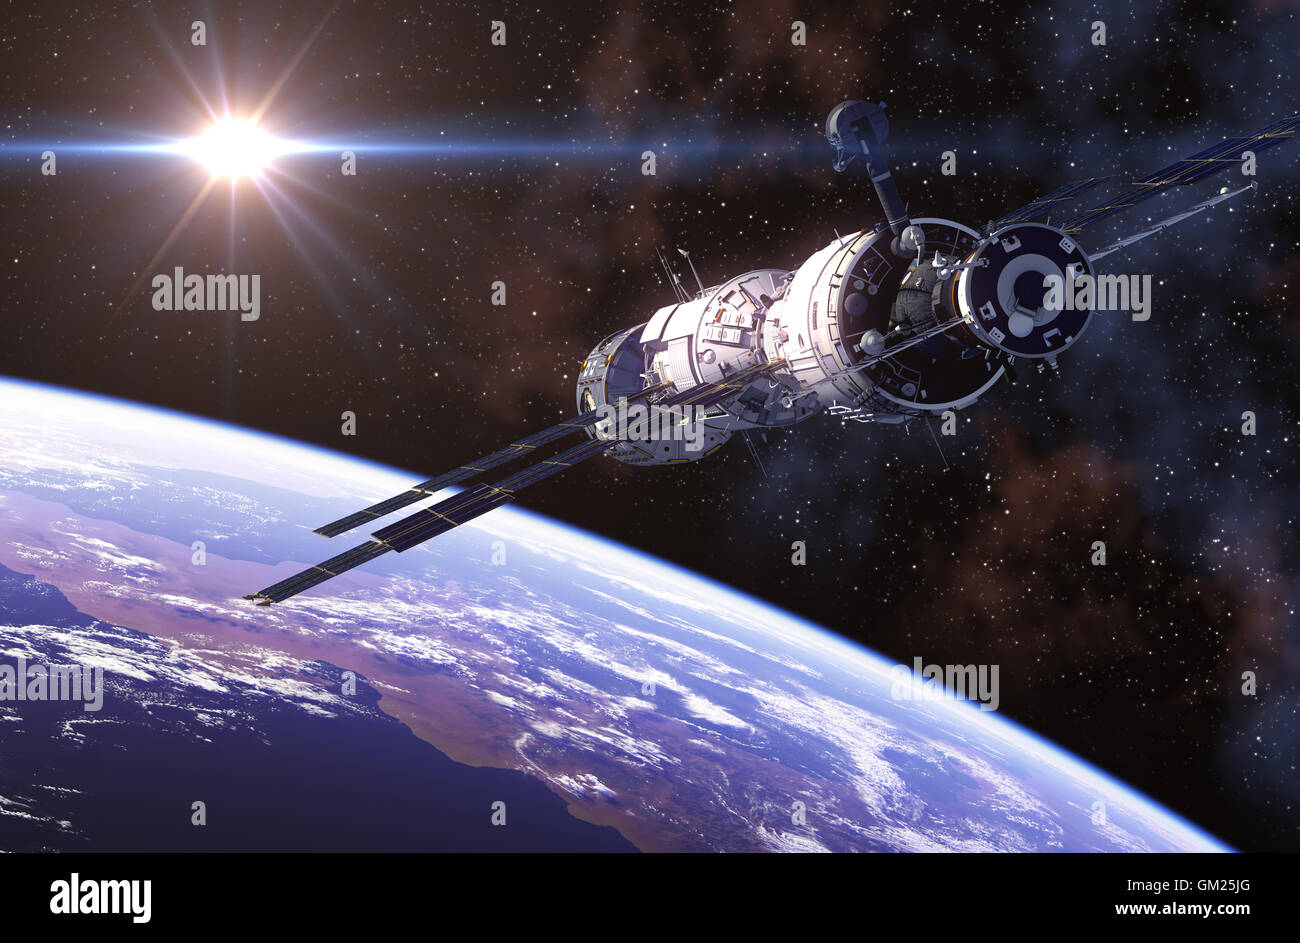 International Space Station In Outer Space. 3D Illustration. - Stock Image